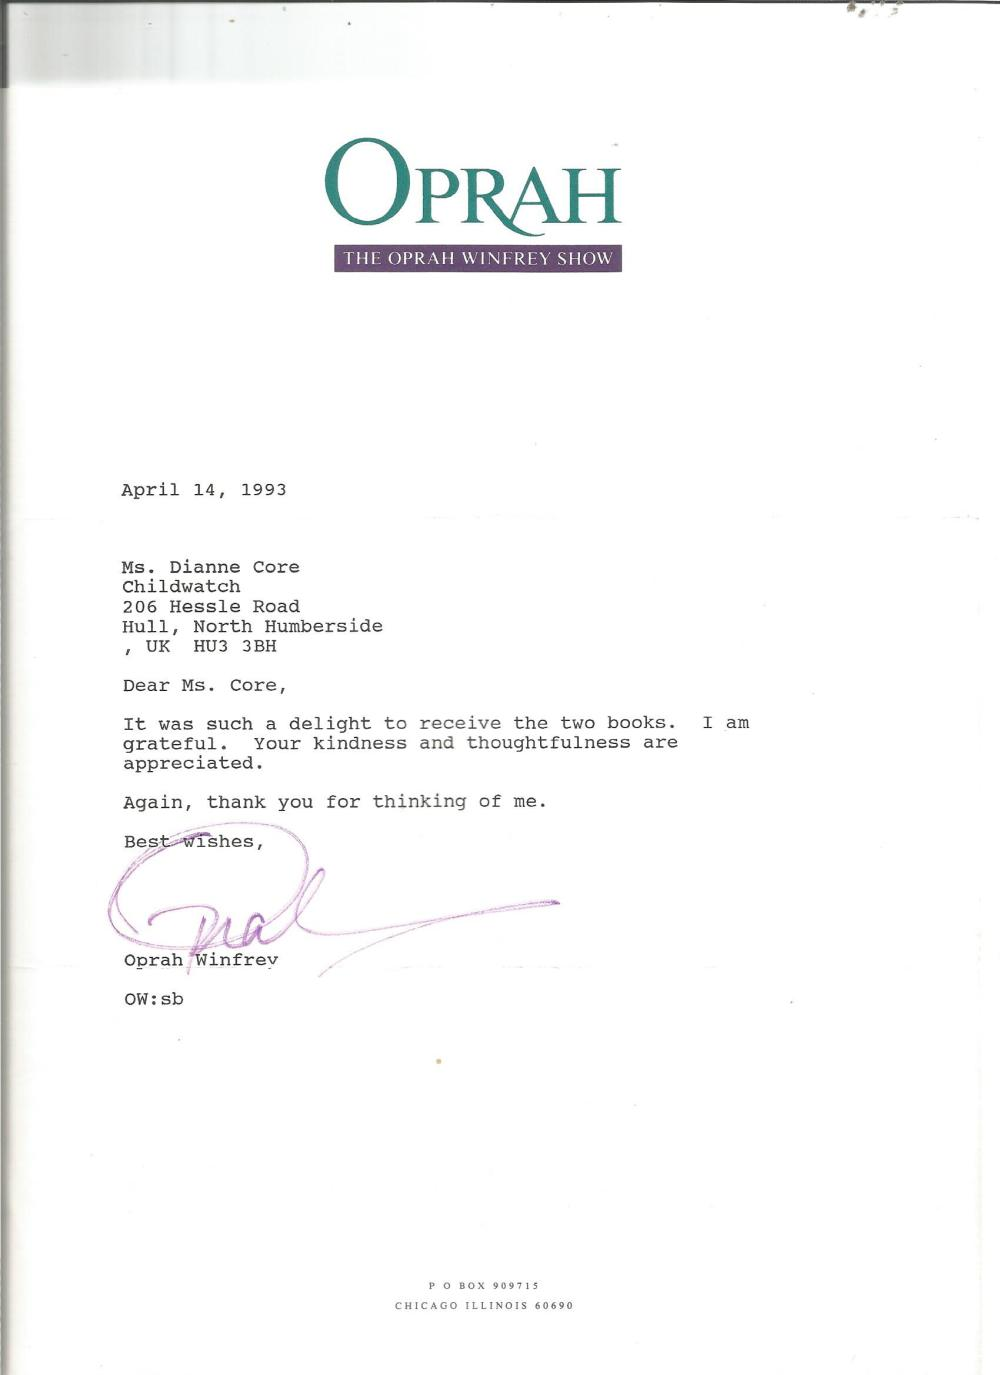 Oprah Winfrey TLS dated 14/4/93. Concerning the receipt of 2 books. On her own stationery. Good